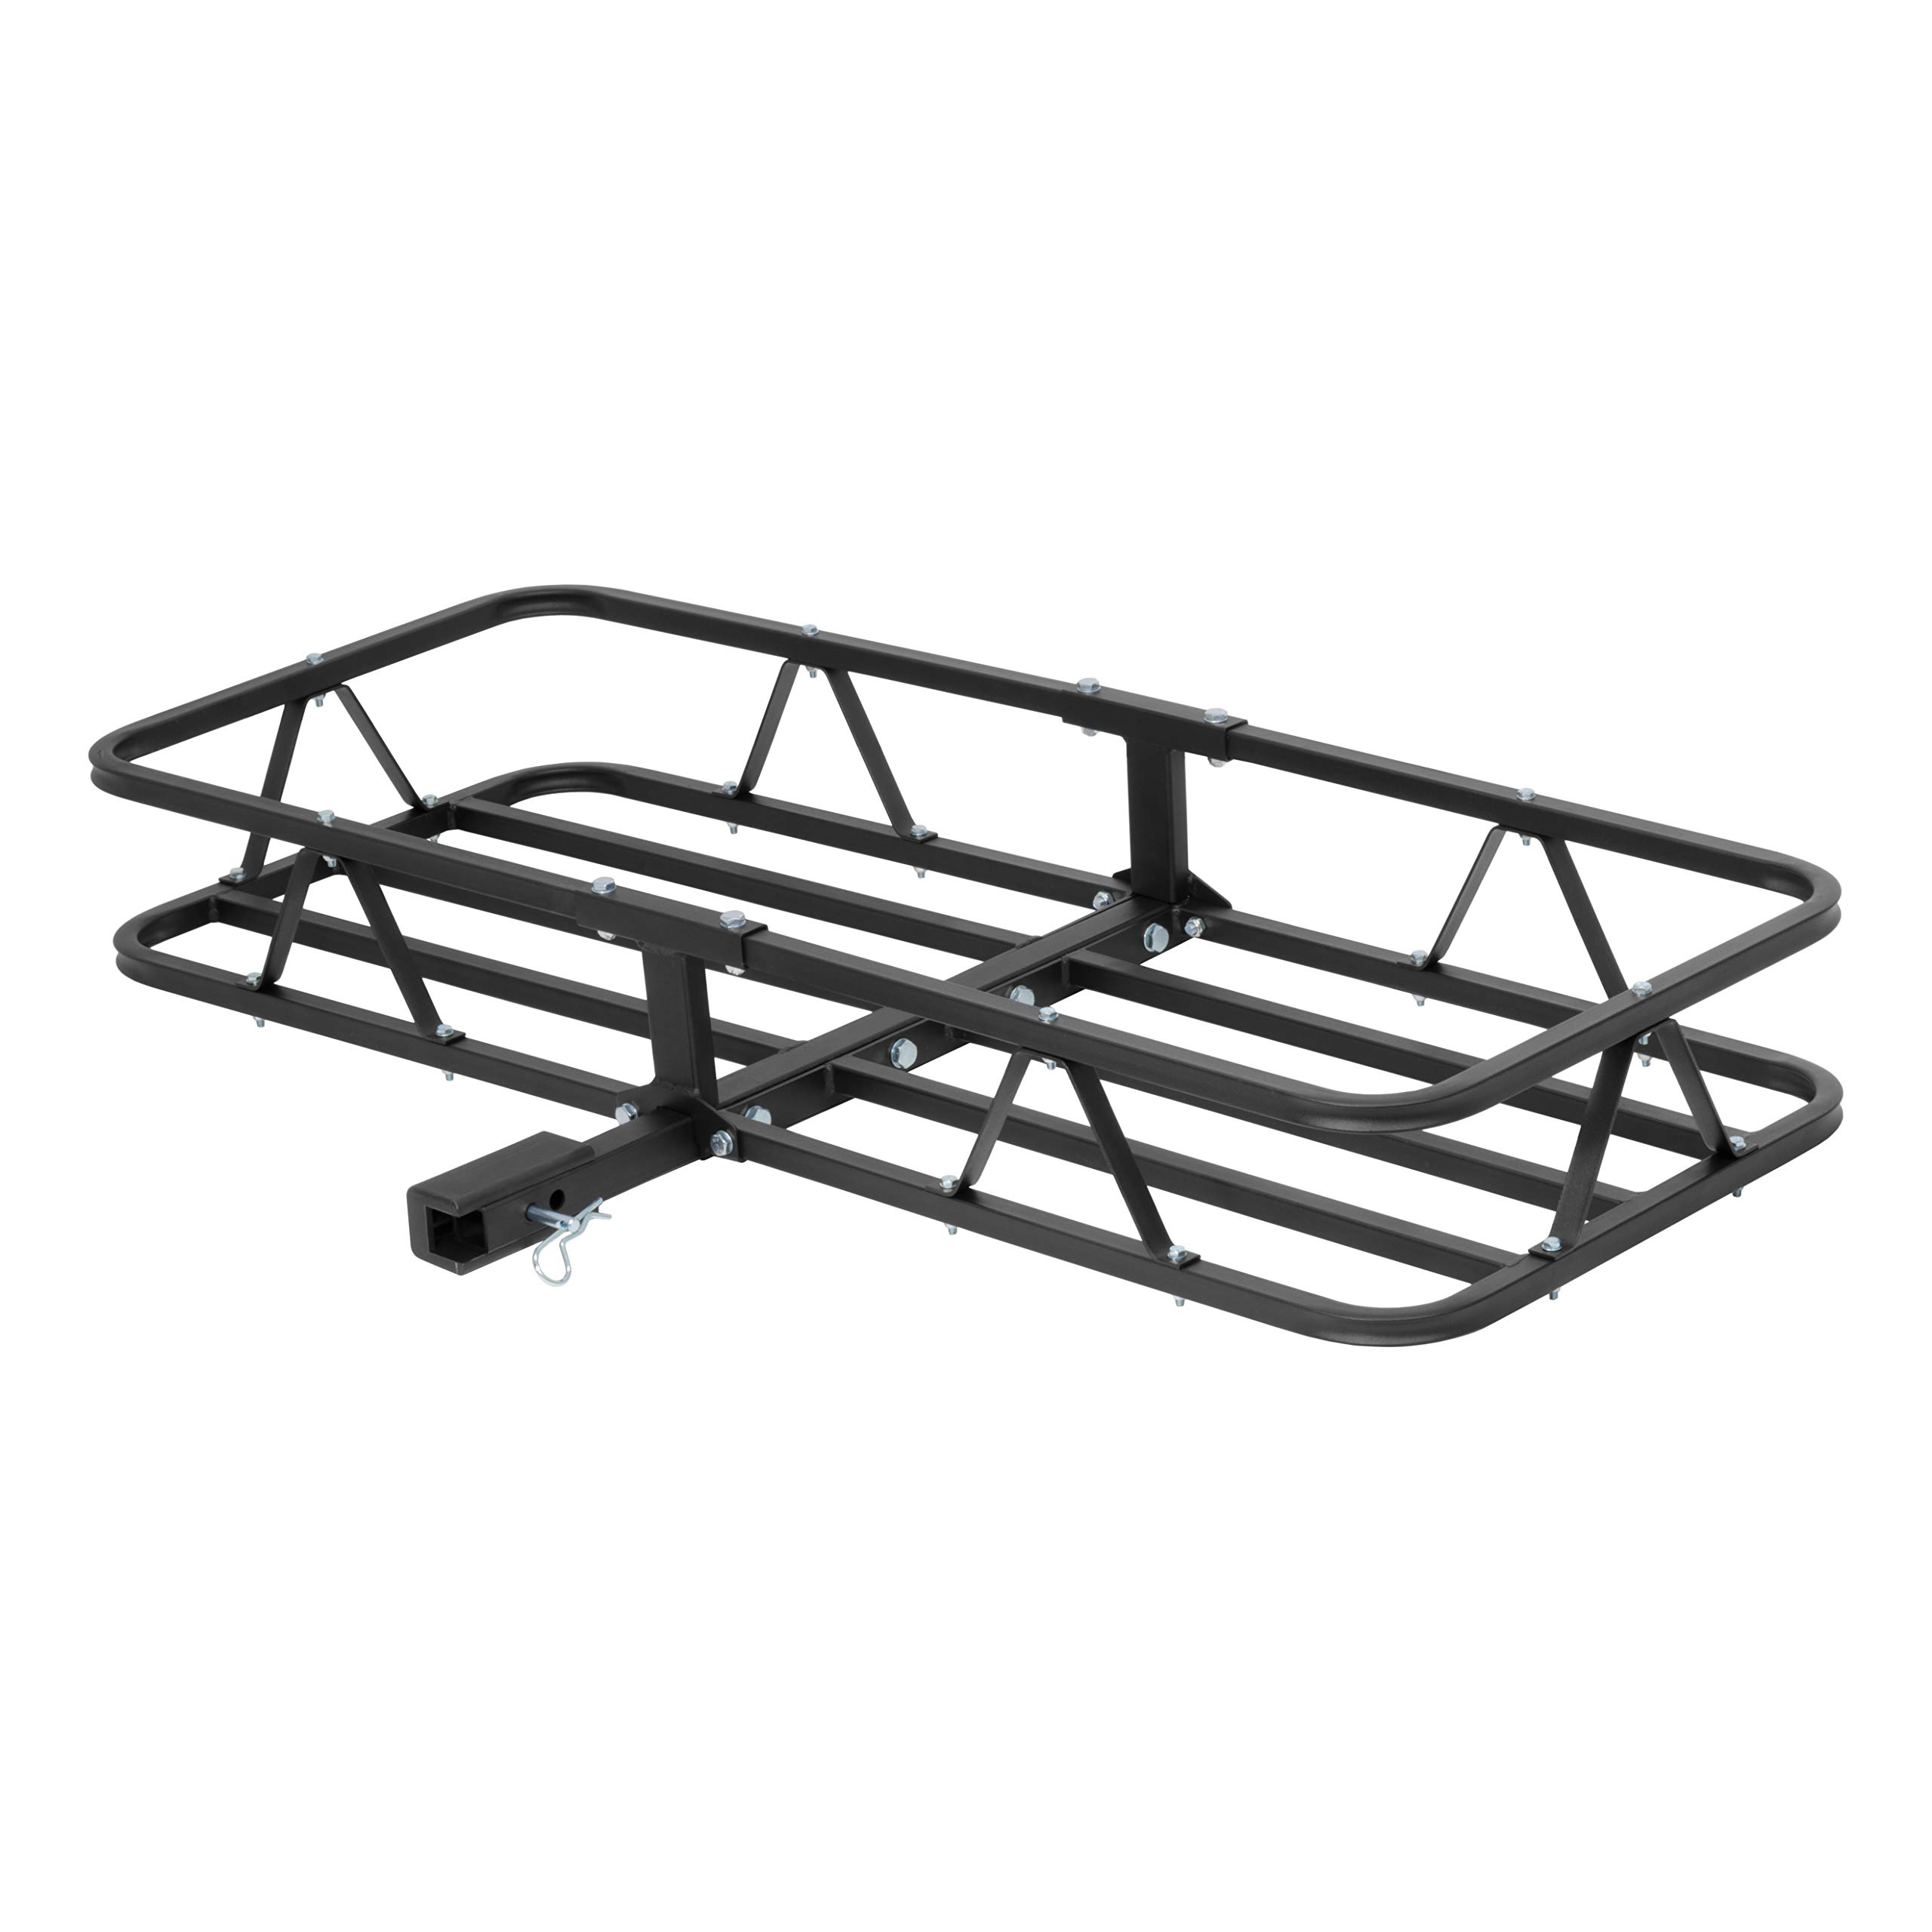 CURT 18145 Basket Trailer Hitch Cargo Carrier 500 lbs. Capacity Universal Mount Rack-1-1/4 Or 2 Inch Receiver by CURT